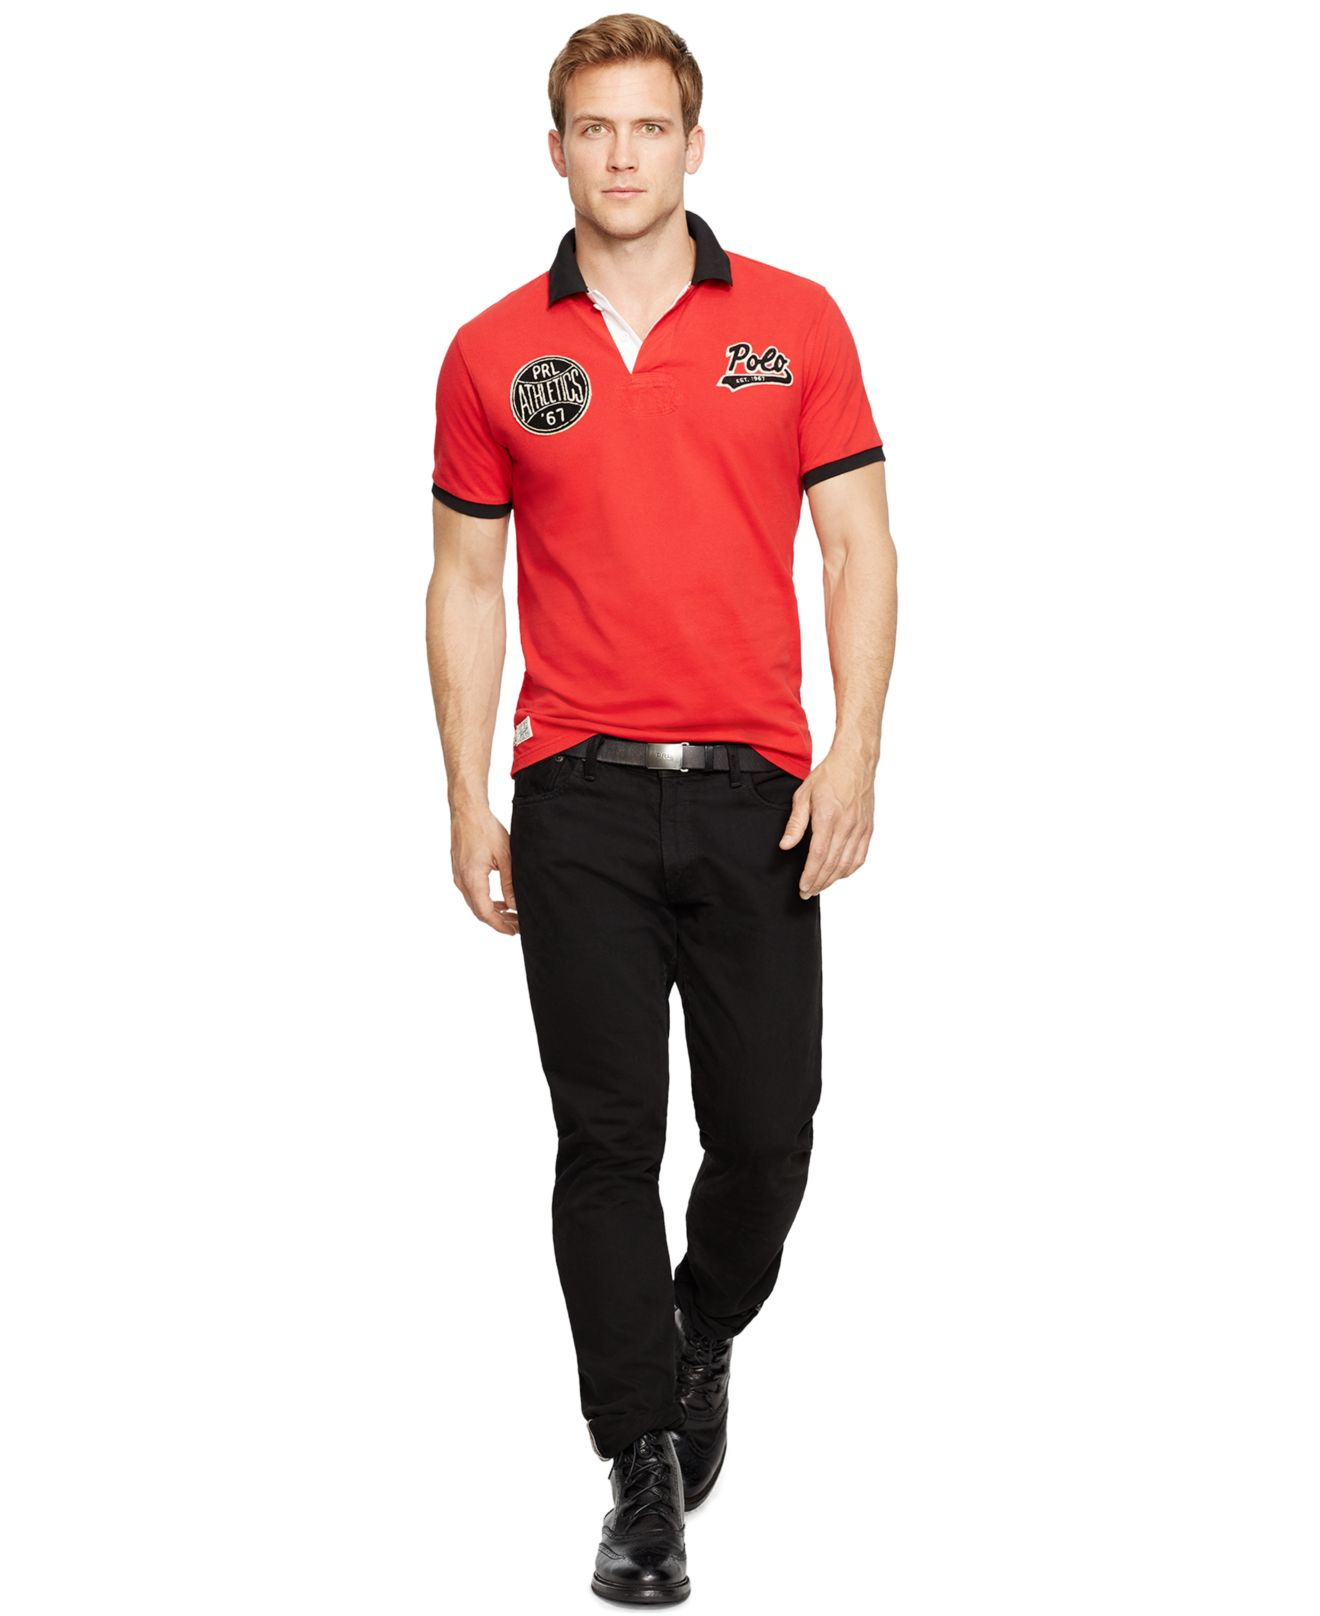 Polo ralph lauren Custom-fit Athletics Mesh Polo in Red for Men (RL 2000